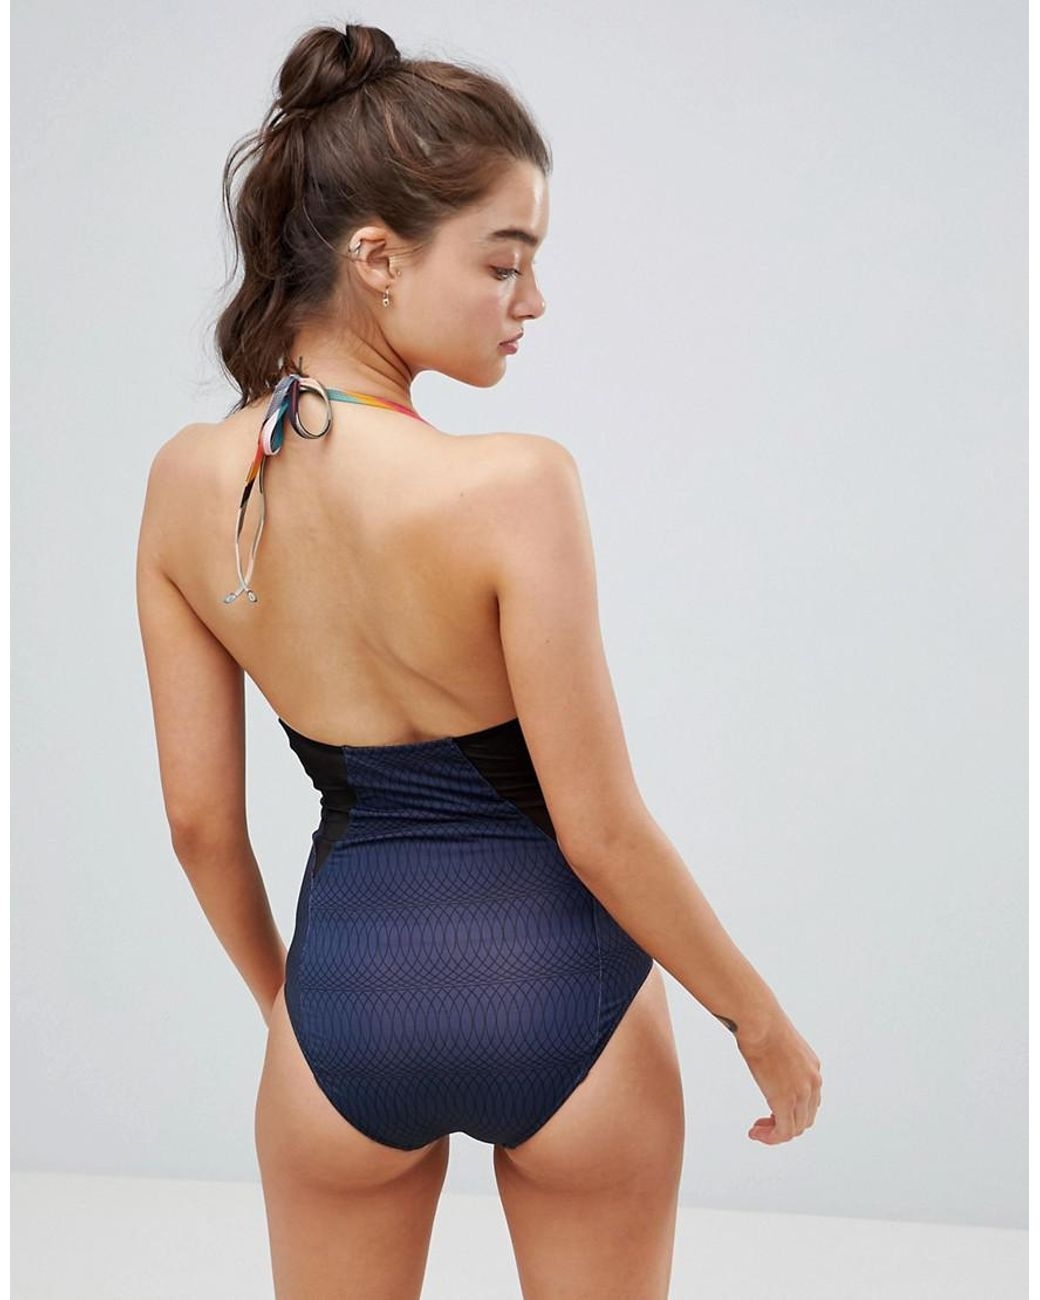 ca19c1b5da PS by Paul Smith Ps By Paul Smith Pannelled Swimsuit in Blue - Lyst